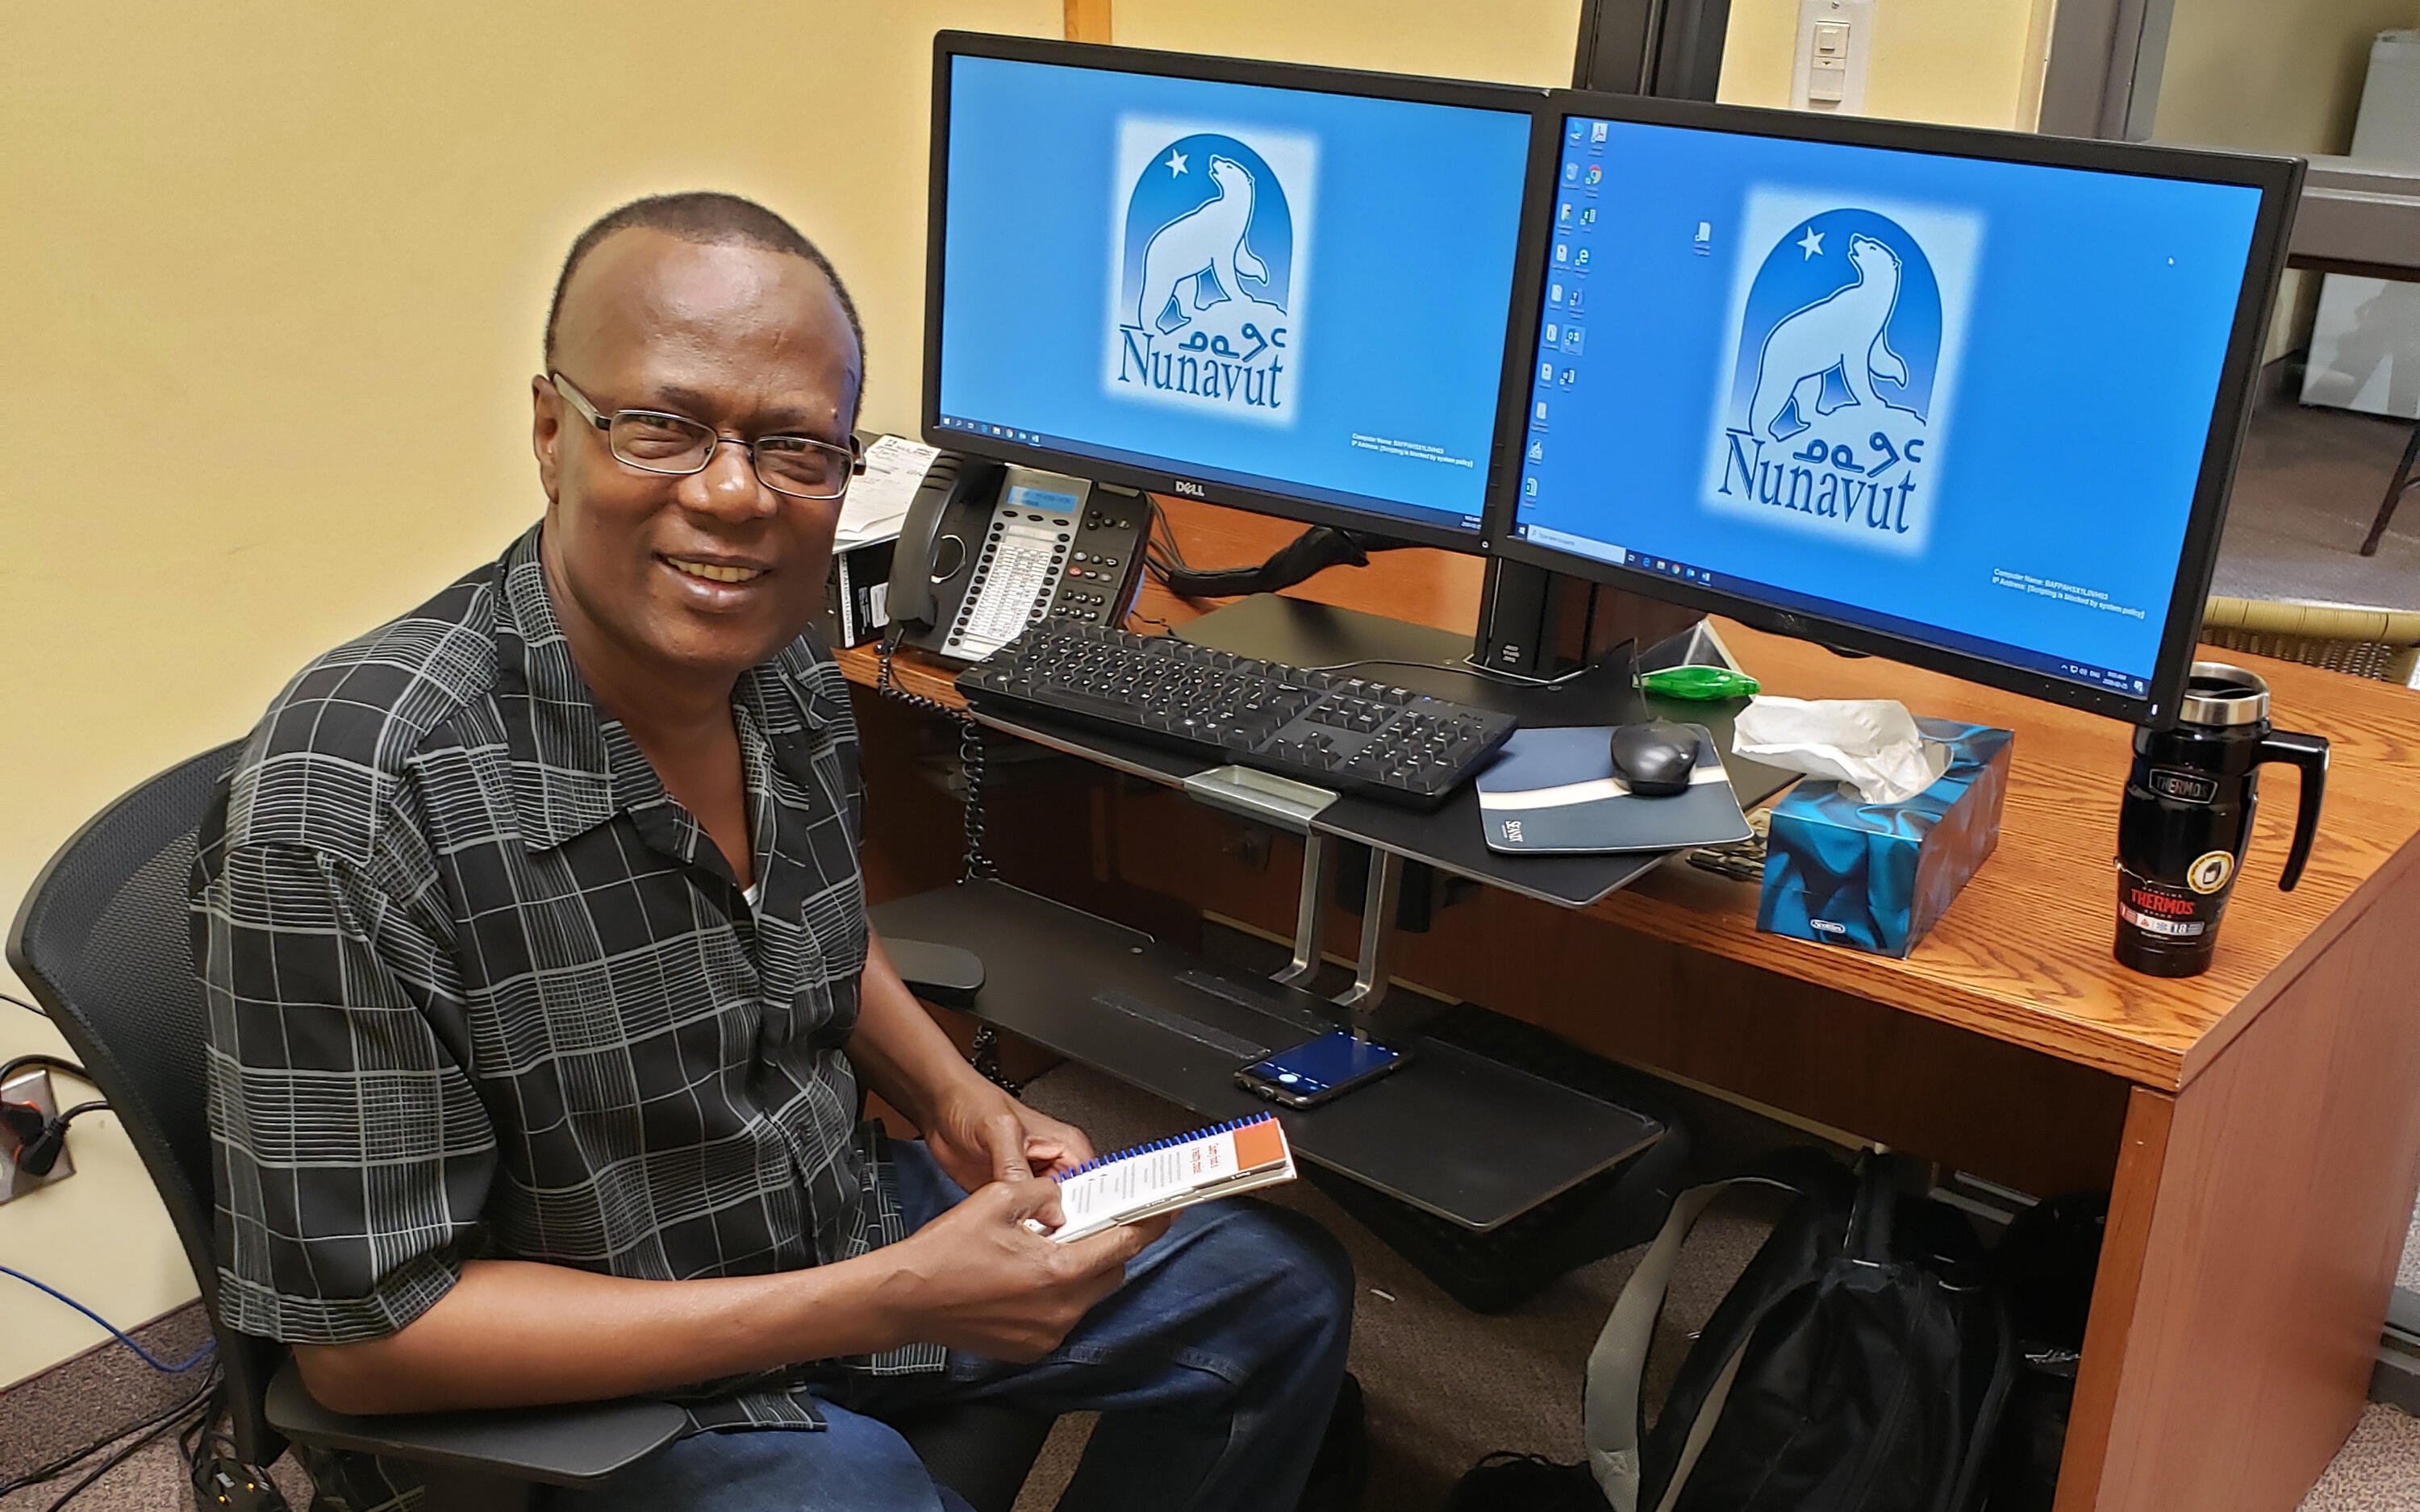 Wilfred Ntiamoah sitting at his computer in his office